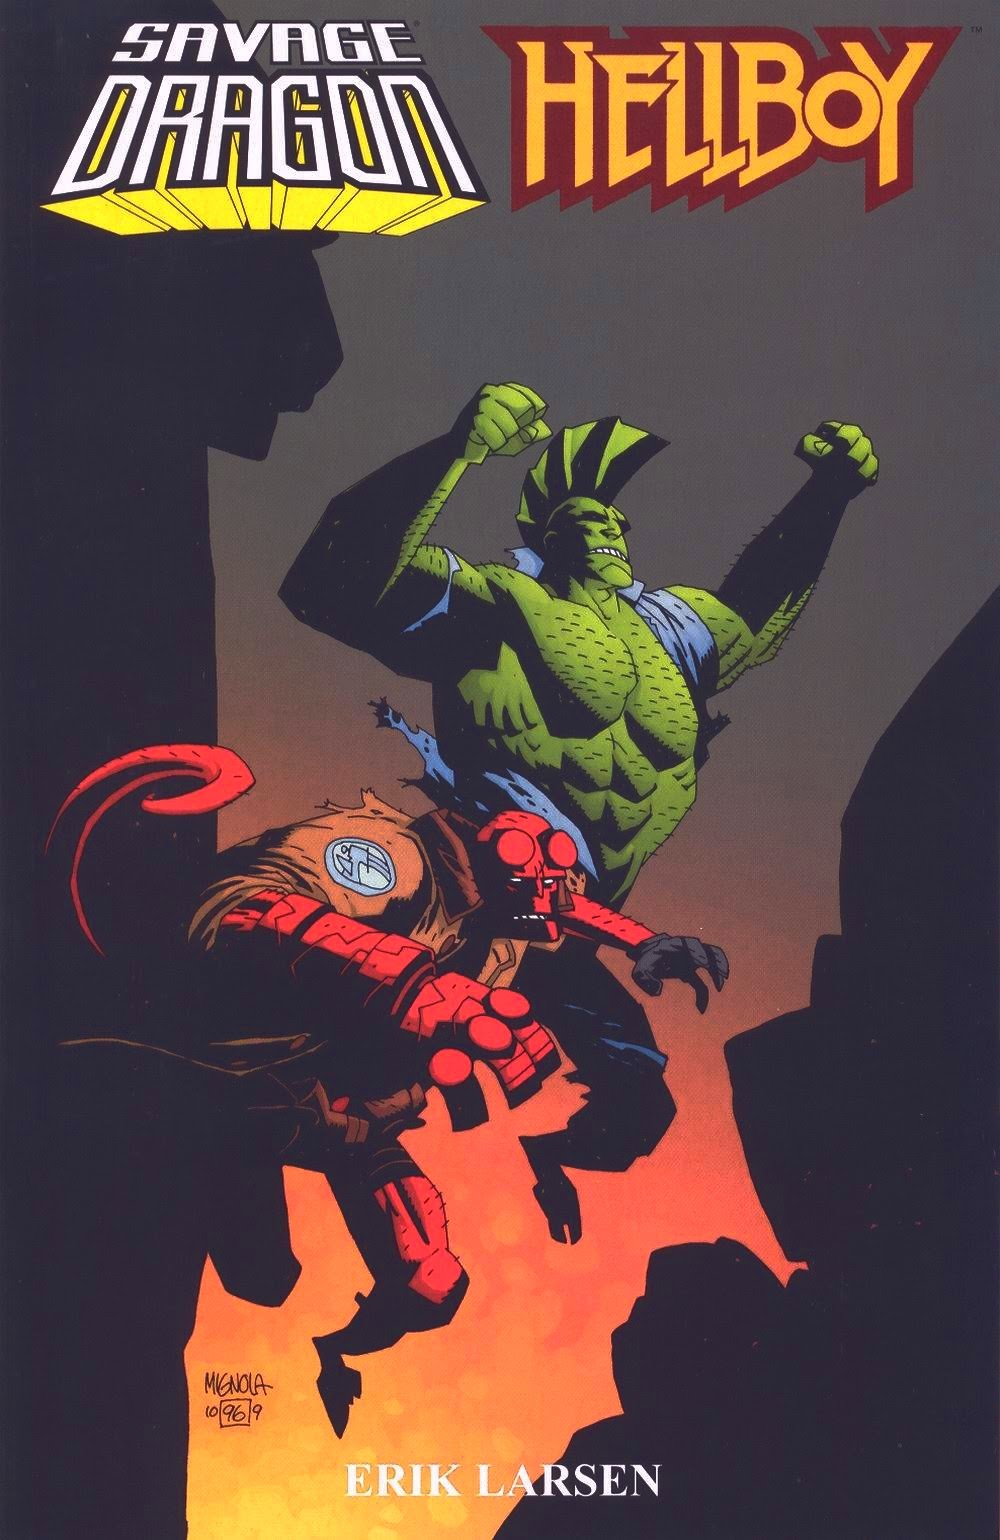 http://www.mediafire.com/download/aqg7xi5emijatig/SAVAGE_DRAGON_-_HELLBOY.zip